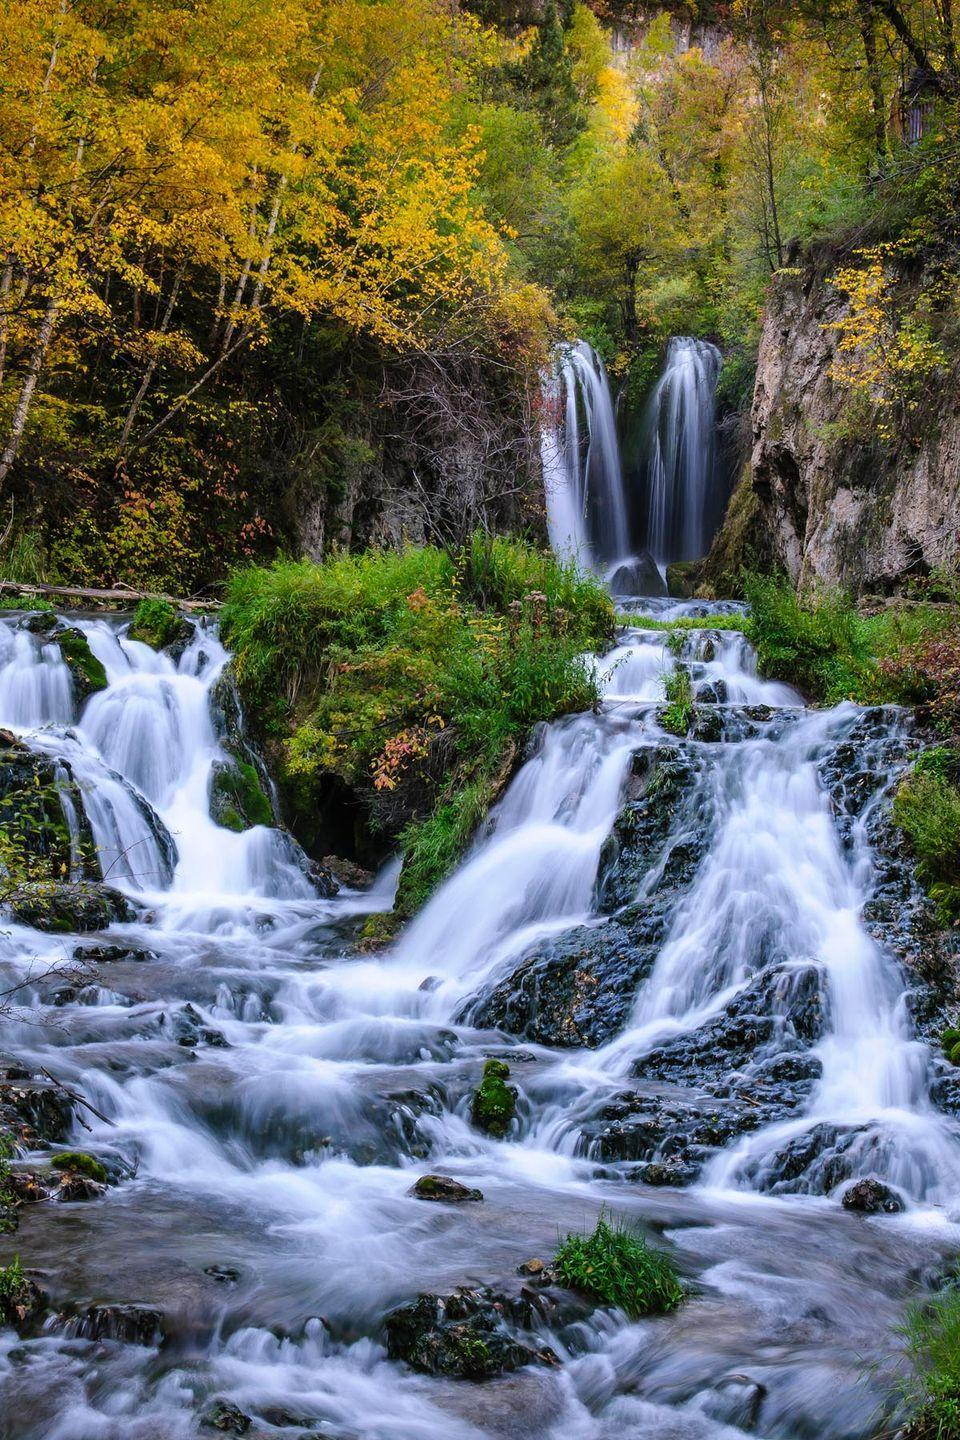 """<p><strong>The Drive: </strong><a href=""""https://www.tripadvisor.com/Attraction_Review-g54810-d1998098-Reviews-Spearfish_Canyon_Scenic_Byway-Spearfish_South_Dakota.html"""" rel=""""nofollow noopener"""" target=""""_blank"""" data-ylk=""""slk:Spearfish Canyon Byway"""" class=""""link rapid-noclick-resp"""">Spearfish Canyon Byway</a></p><p><strong>The Scene: </strong>Travel through one of the prettiest towns in South Dakota just off of Interstate 90. Come visit in the fall to see all the vibrant autumn colors in the canyon. </p><p><strong>The Pit-Stop: </strong>Walk to <a href=""""https://www.tripadvisor.com/AttractionsNear-g54810-d8559731-Bridal_Veil_Falls-Spearfish_South_Dakota.html"""" rel=""""nofollow noopener"""" target=""""_blank"""" data-ylk=""""slk:Bridal Veil Falls"""" class=""""link rapid-noclick-resp"""">Bridal Veil Falls</a>, where there's a small wooden platform that's a popular spot for Instagram-worthy photos.</p>"""